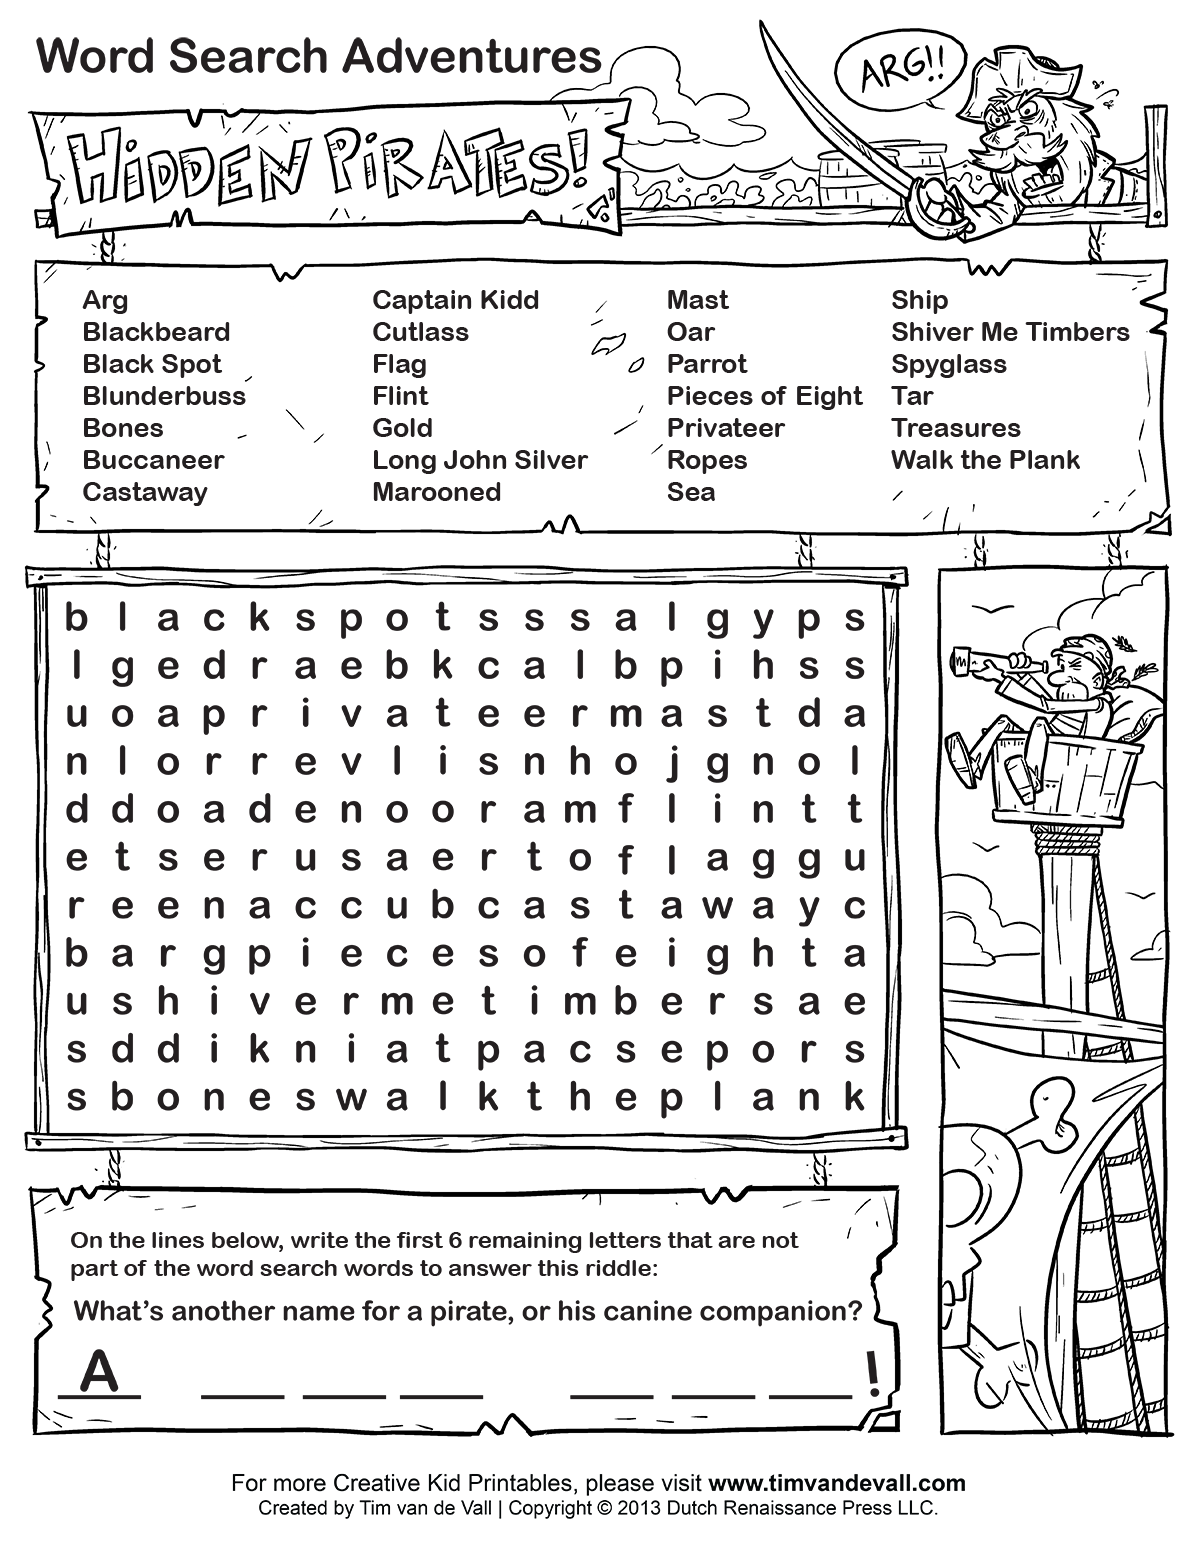 worksheet Free Printable Word Search Worksheets printable word searches for kids search puzzle kids